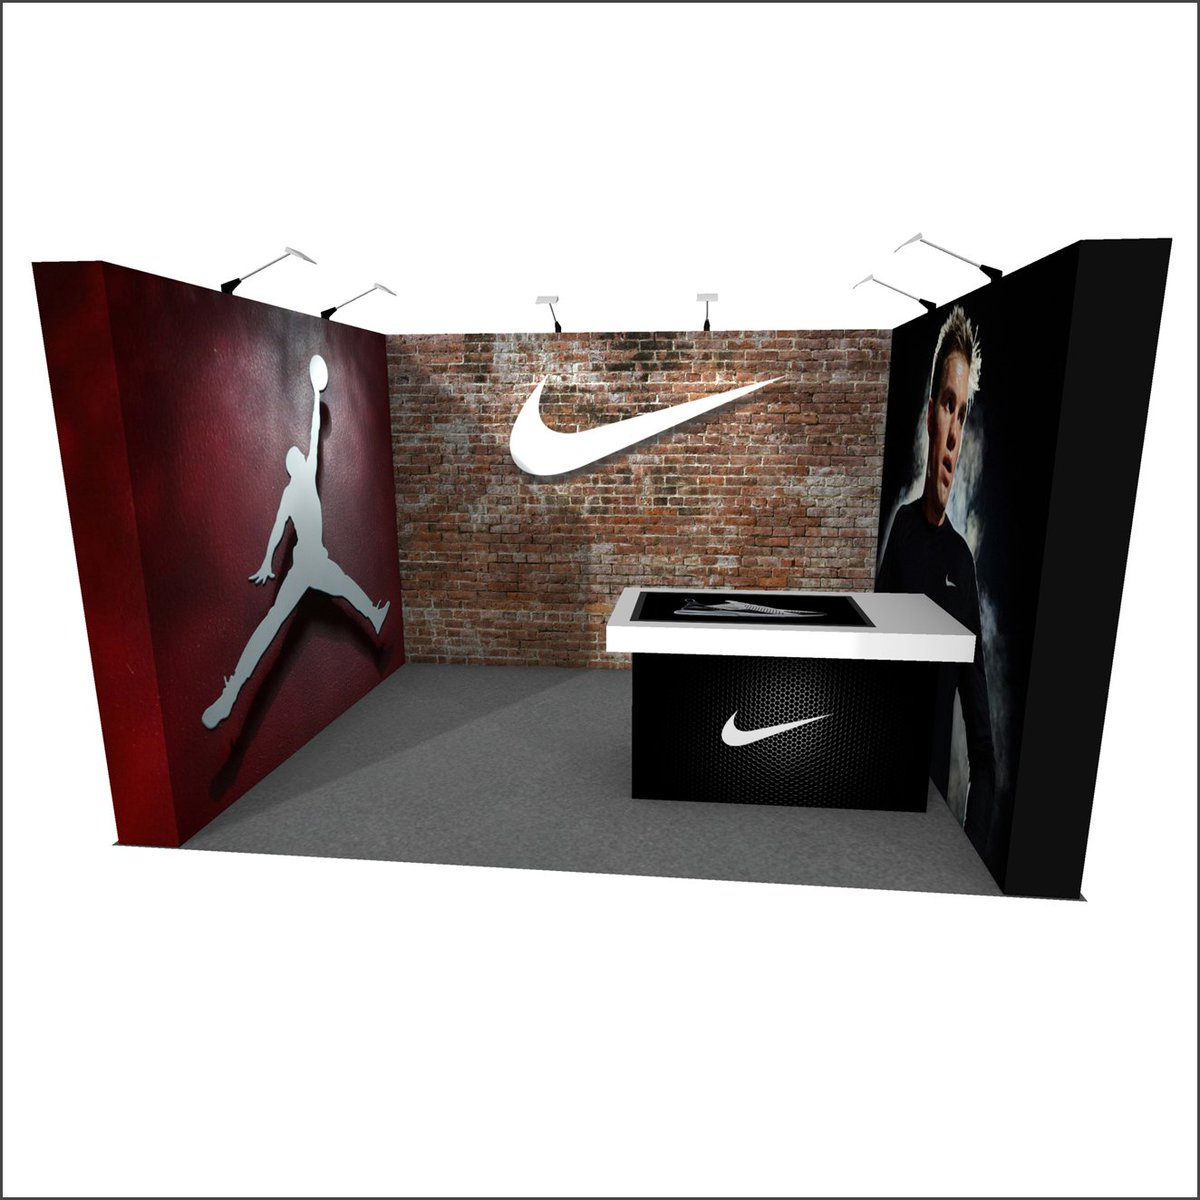 #exhibiting at #bpfitnesstradeshow #thefitnessshow #TheFitExpo? We can help you create an eye-catching #interactive space that can re used over and over again. #askei for a quote or email hello@exhibitinteractive.co.uk to find out how we can help! #Exhibition #sustainable #Nikepic.twitter.com/lTh7hZ4BIN